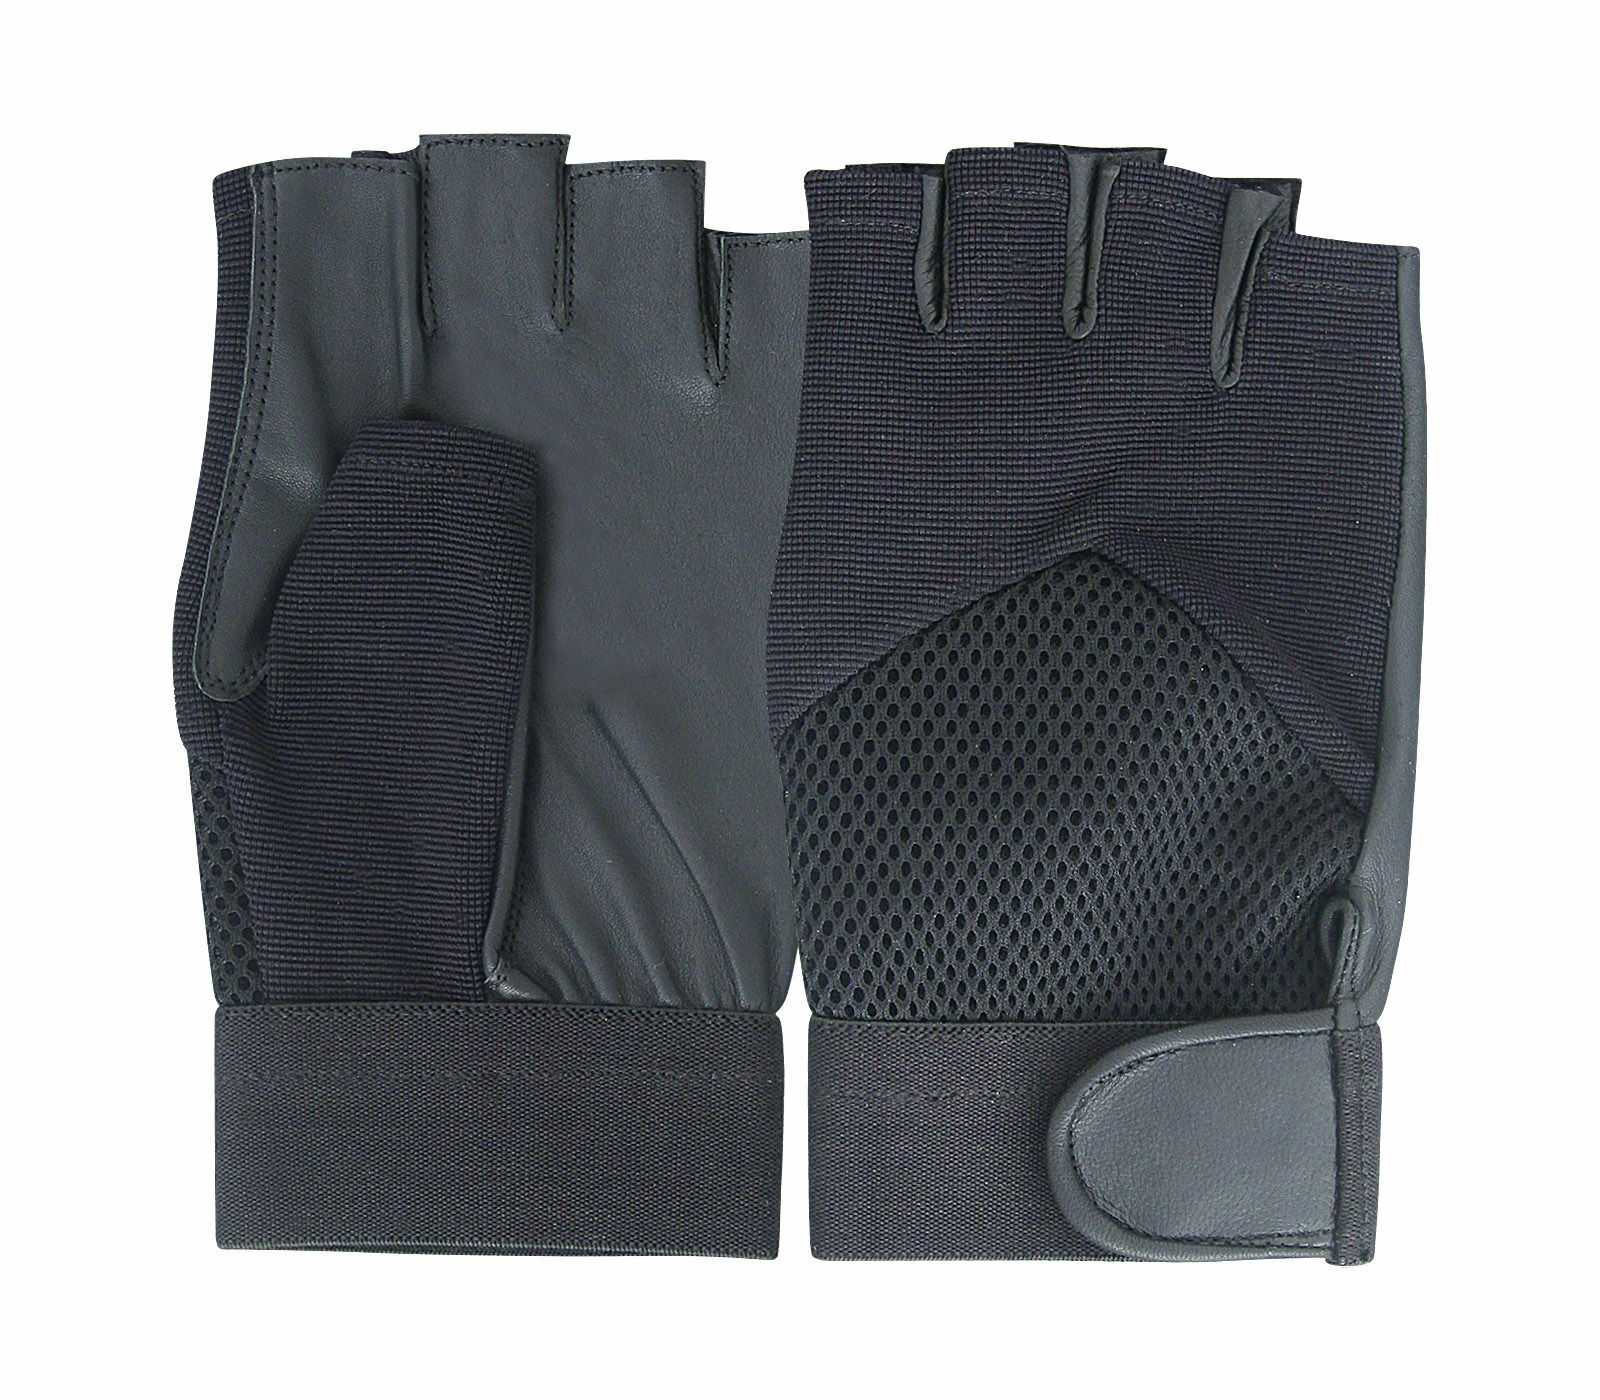 Black Bus Cycling Driving Fingerless Gloves DURABLE! XS - XXL | Free Postage UK